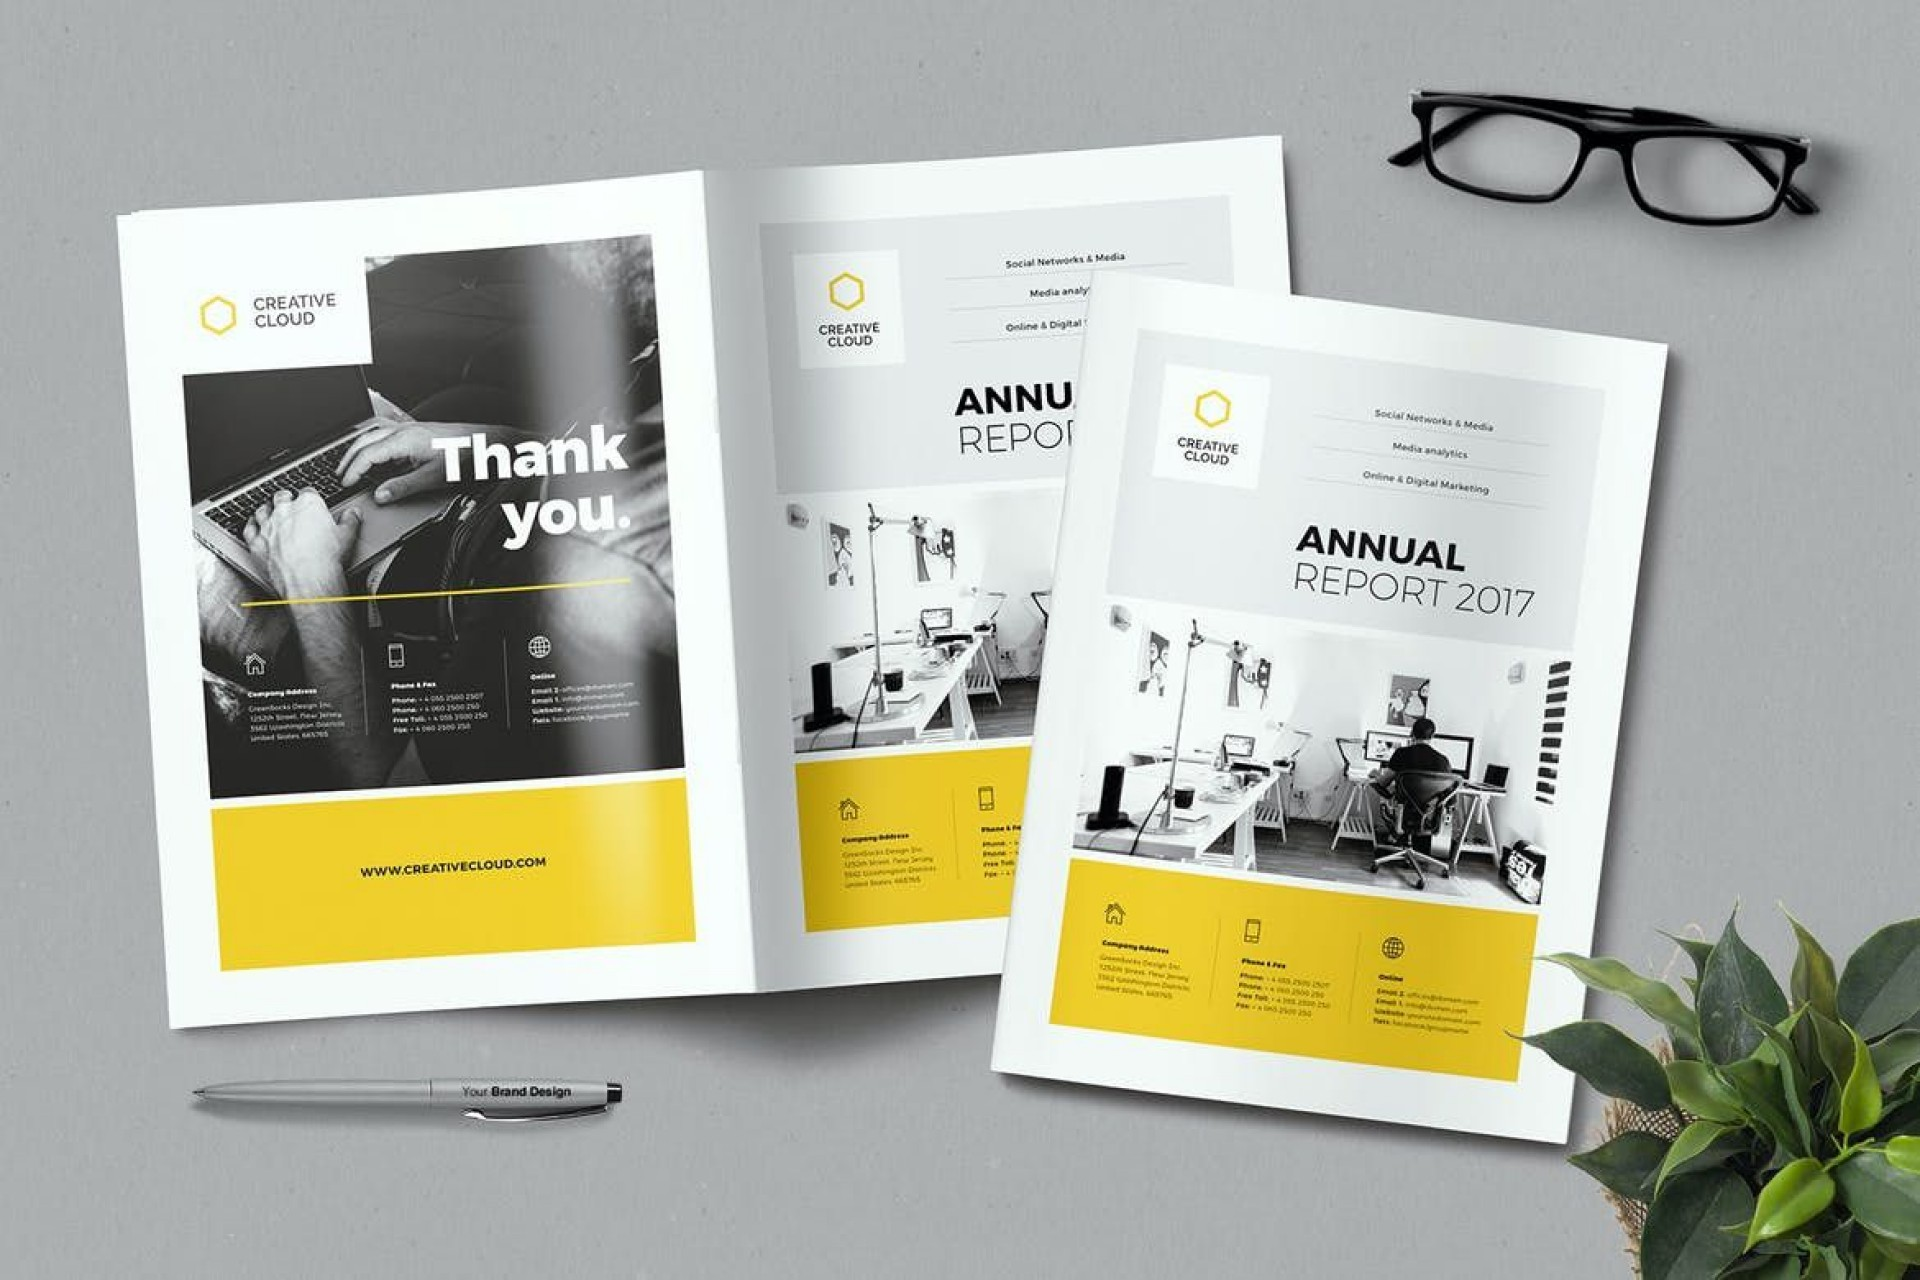 006 Remarkable Annual Report Design Template Indesign High Def  Free Download1920